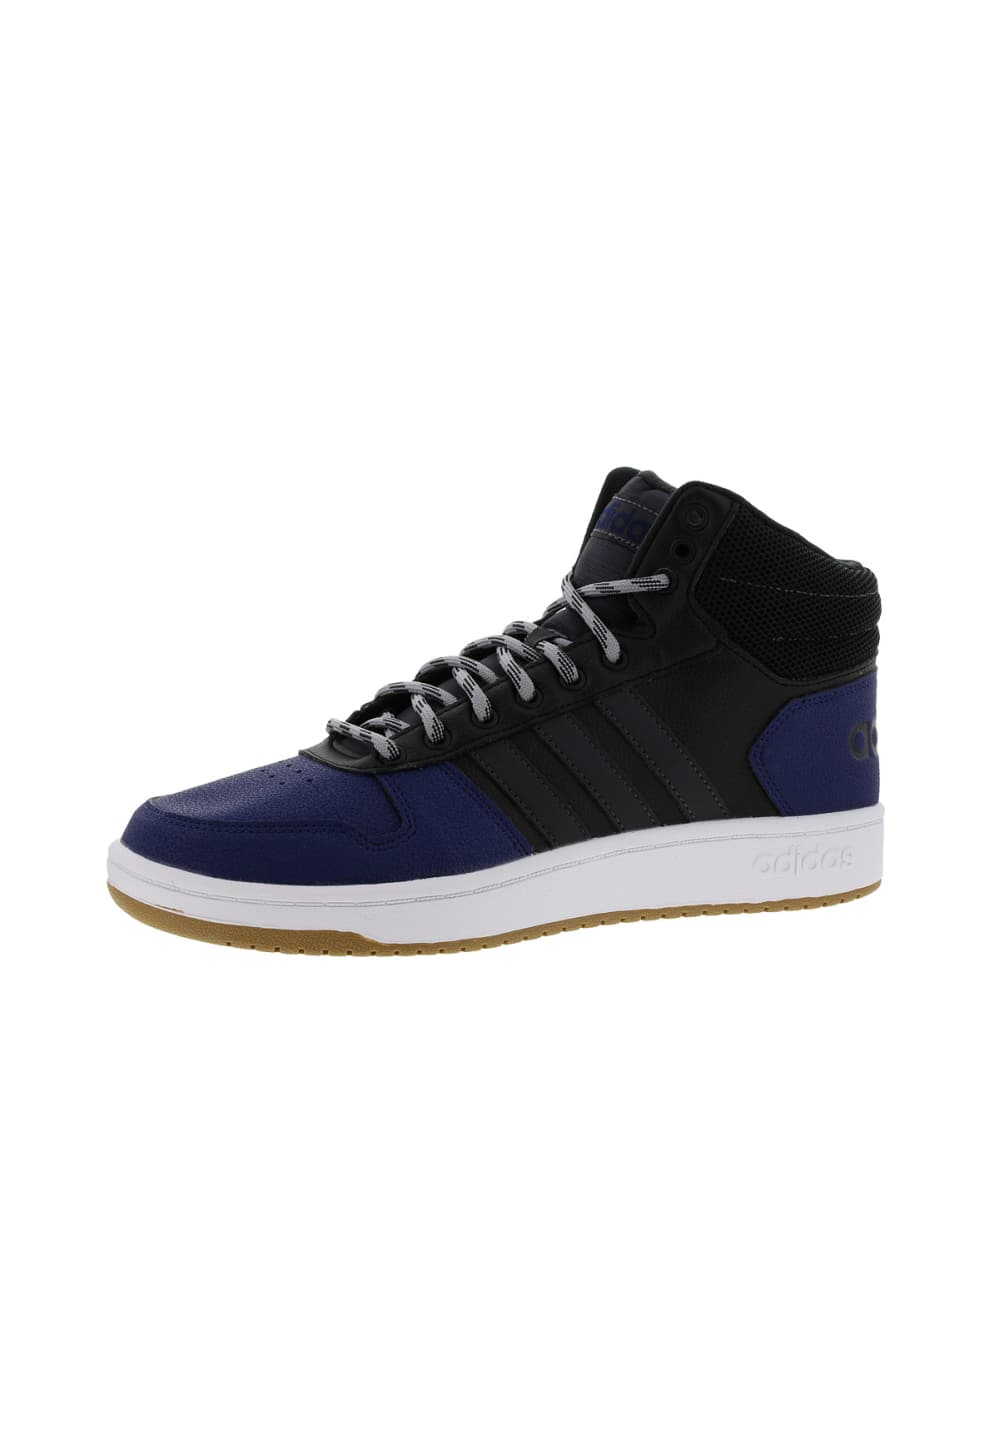 Salle Bleu Hoops Mid Sports Homme Adidas Chaussures Pour 0 En Neo 2 E9IYHeD2W